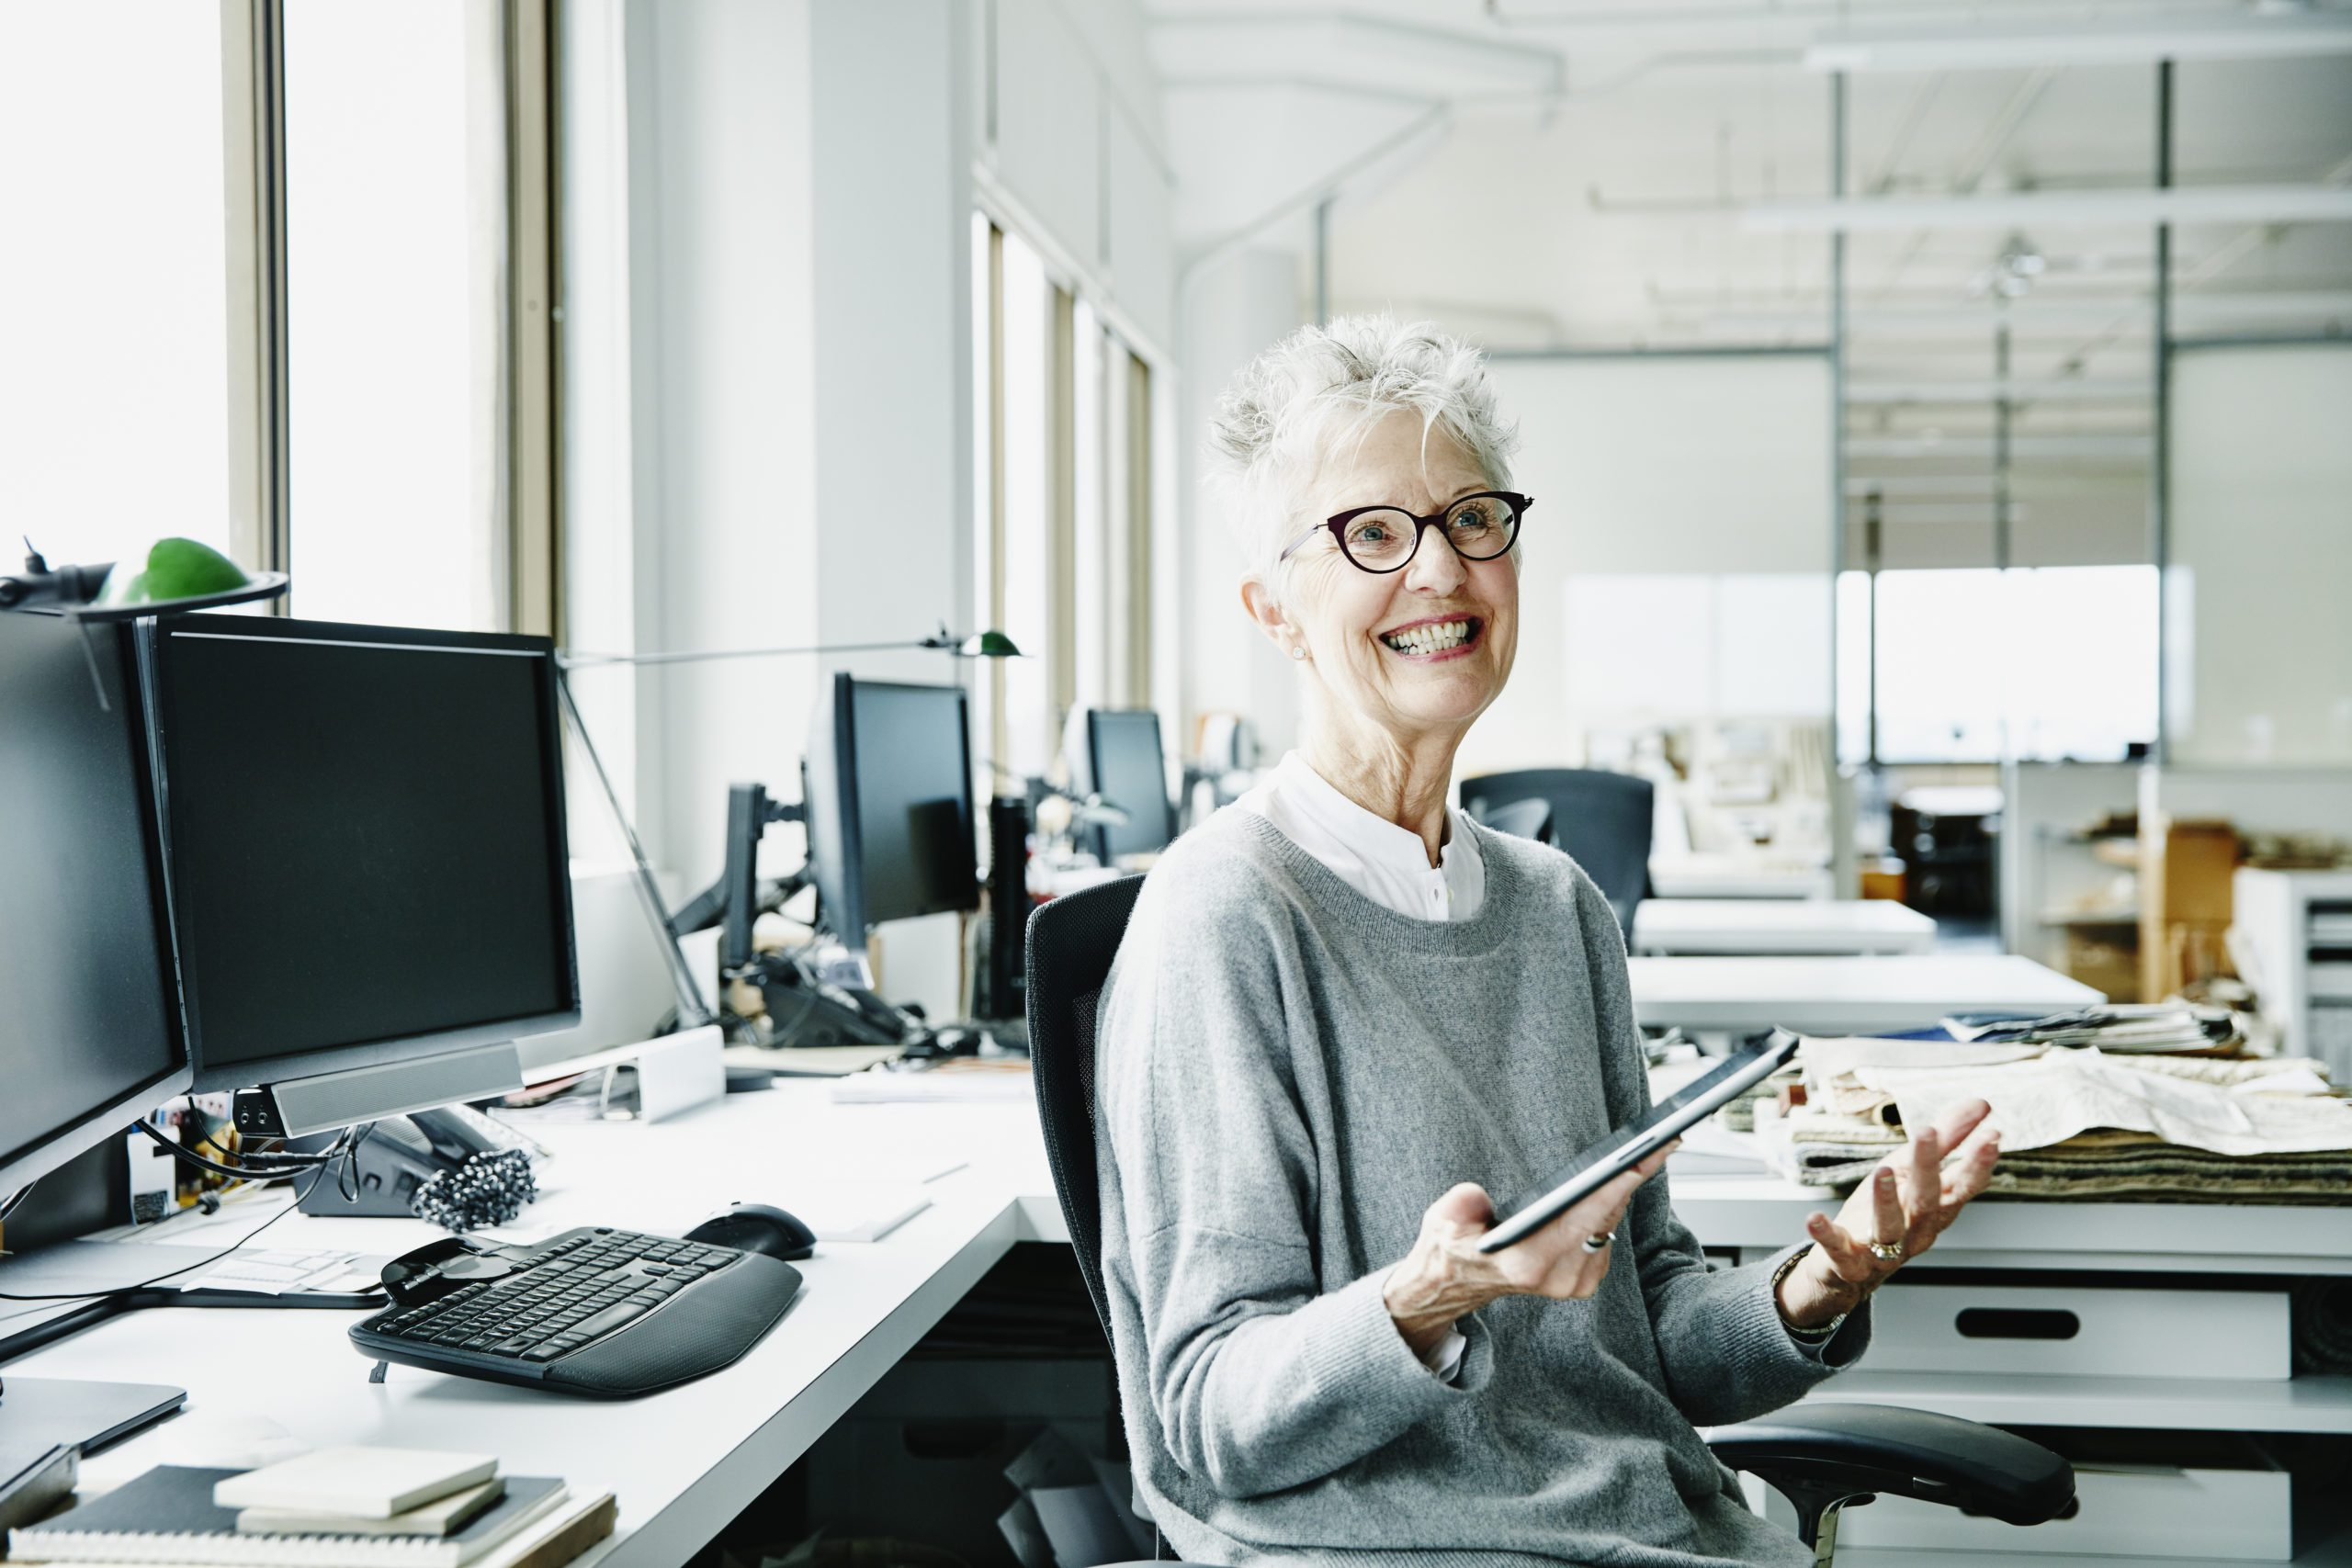 Defying ageism in the workplace